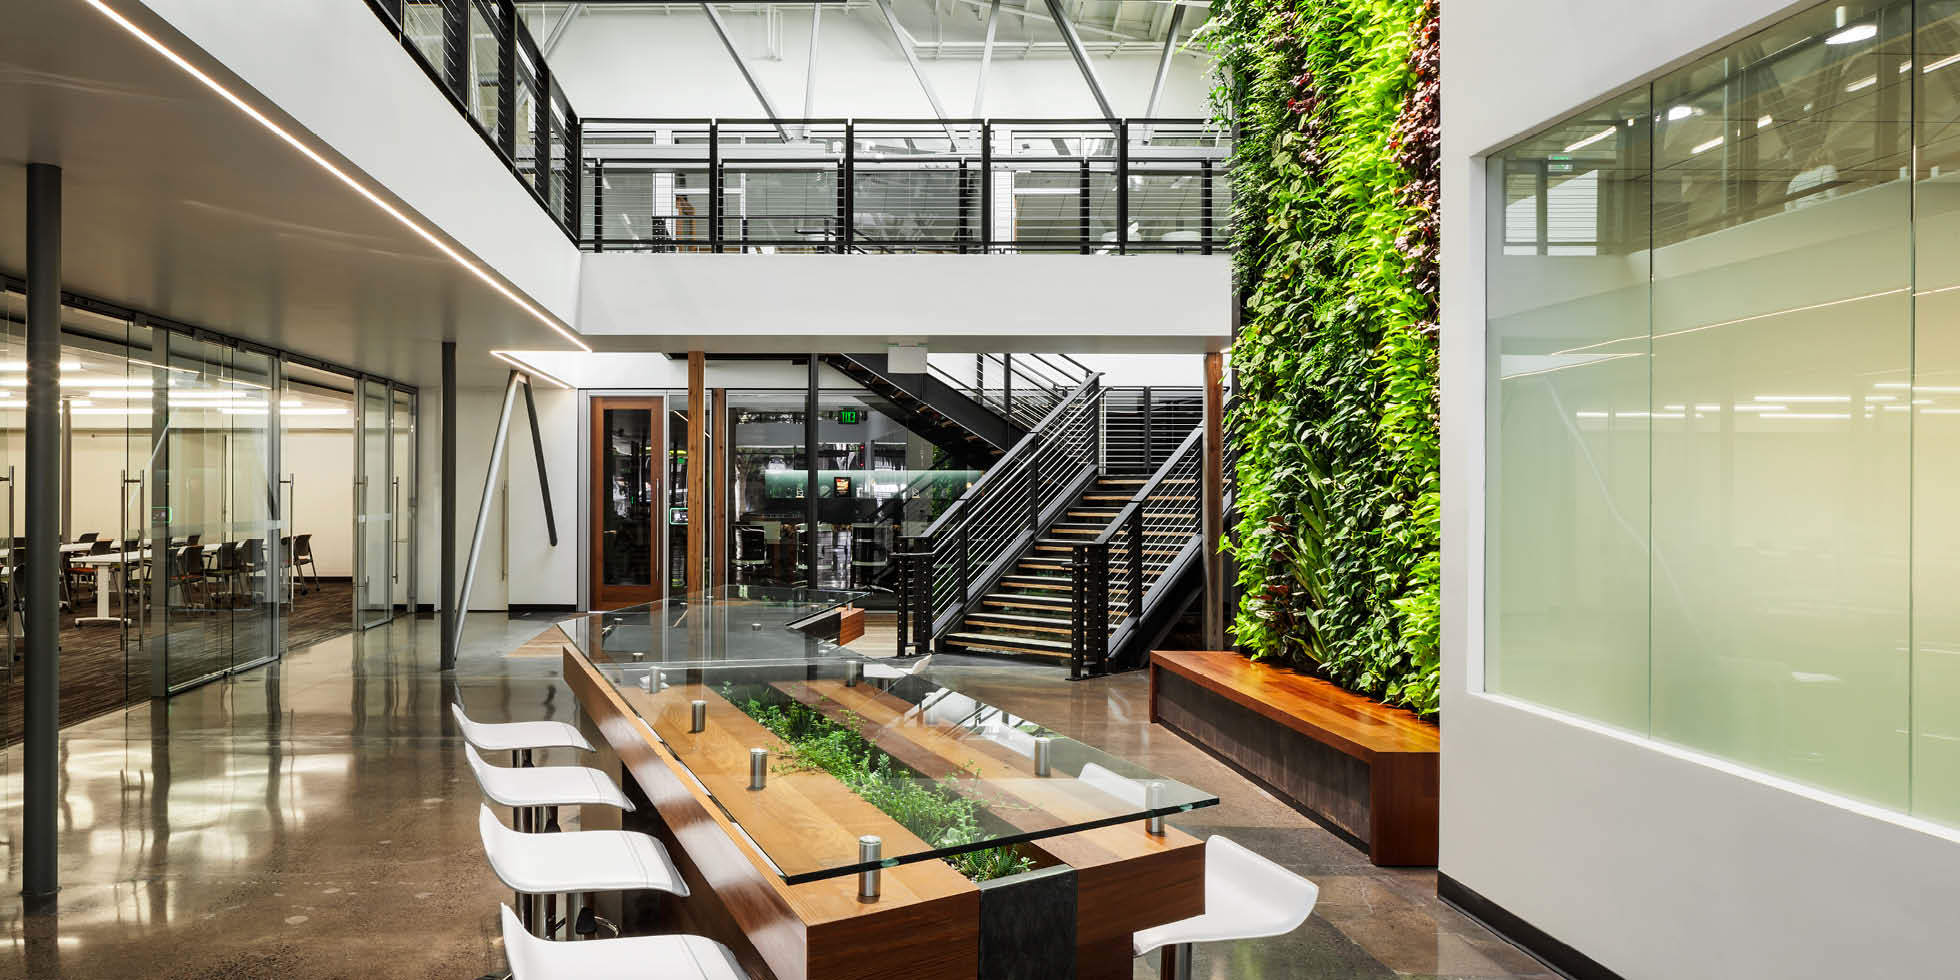 DPR Construction Living Wall by Habitat Horticulture - View 1